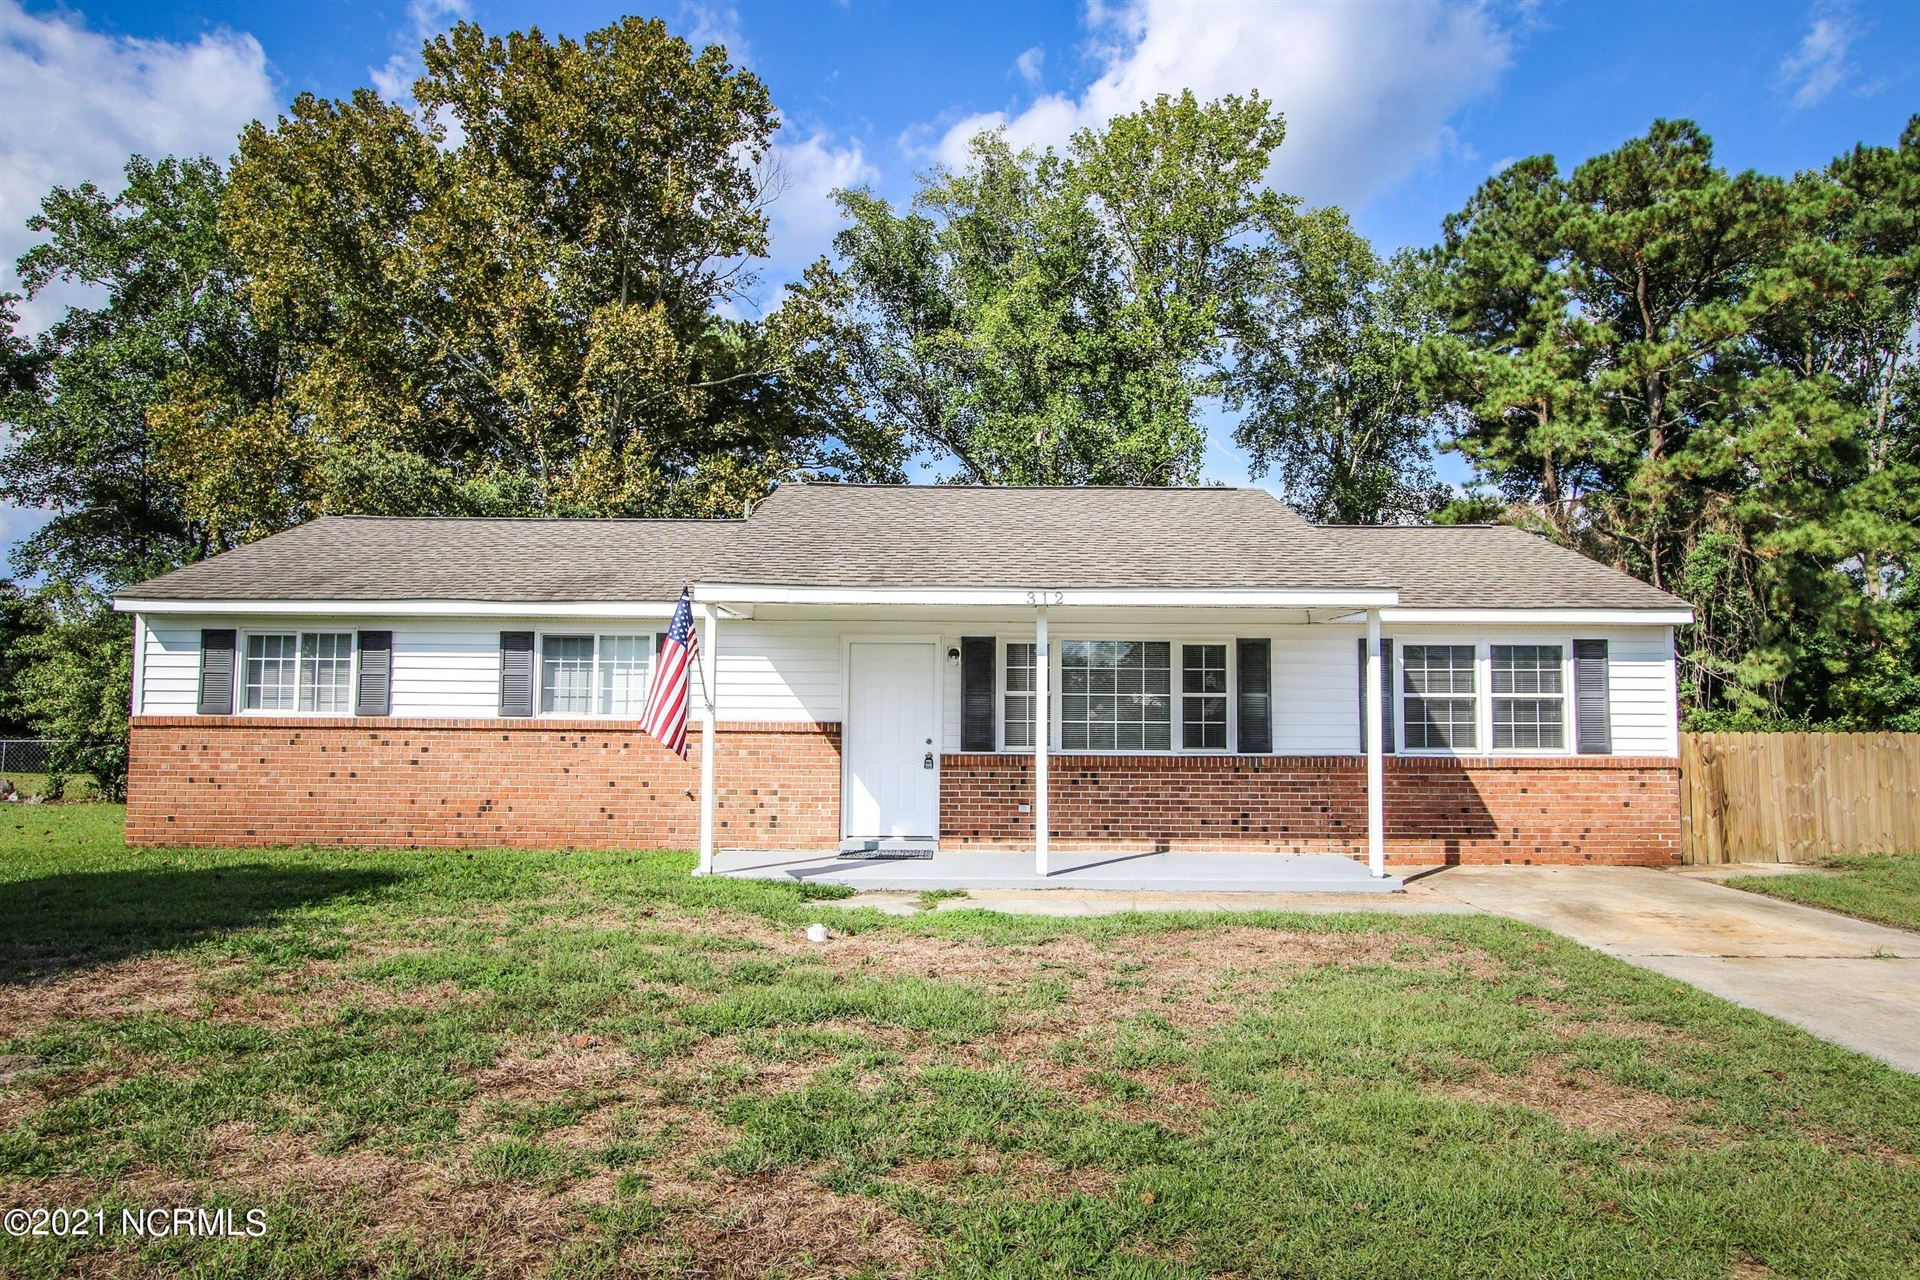 Photo of 312 Dale Drive, Jacksonville, NC 28540 (MLS # 100295522)